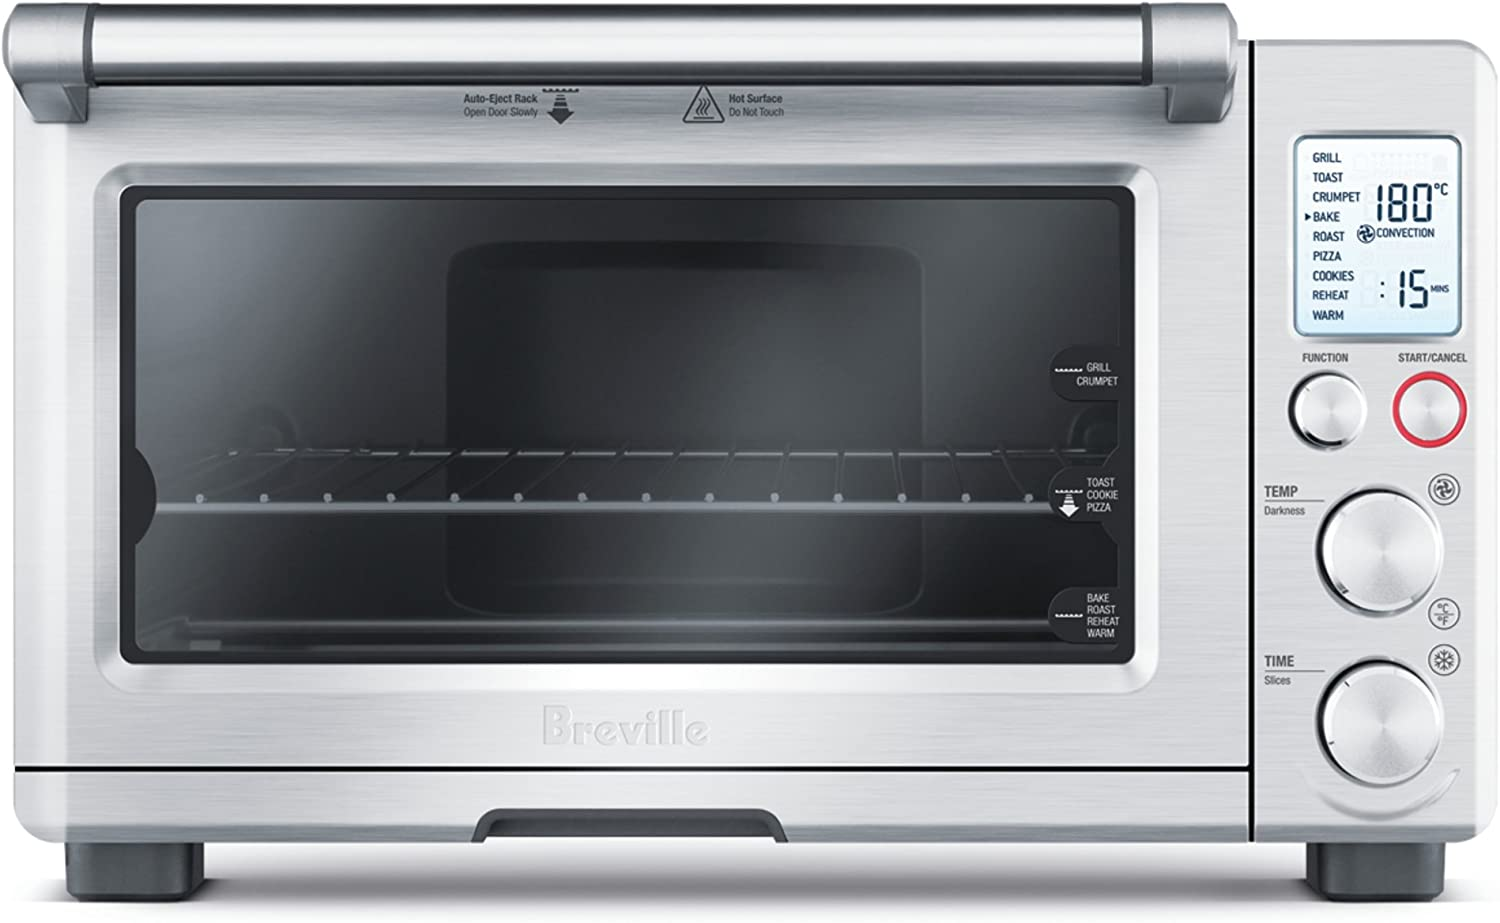 Breville BOV800XL Smart Toaster Oven review